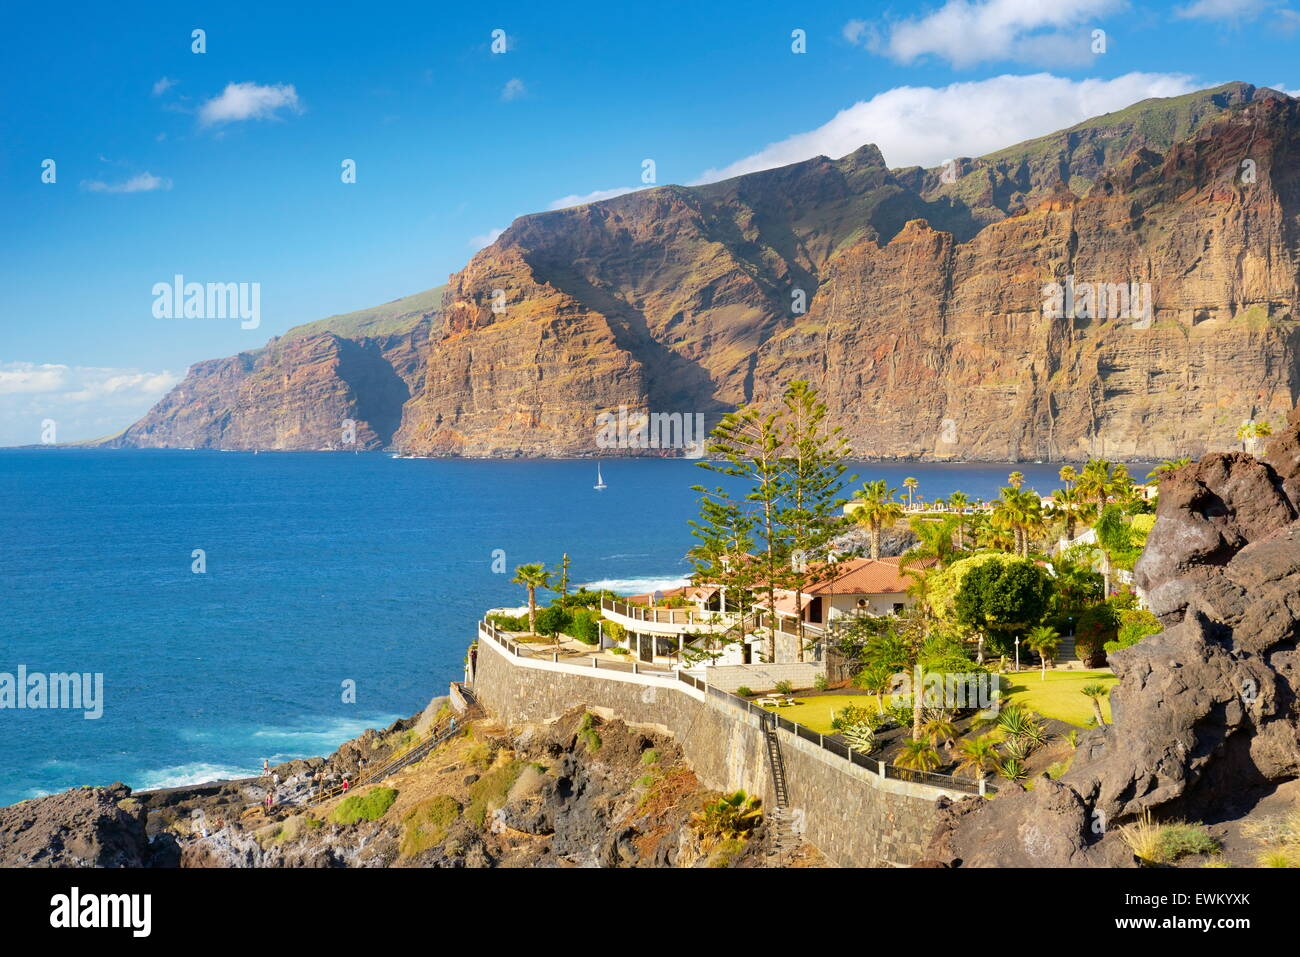 Los Gigantes Cliff, Tenerife, Canaries, Espagne Photo Stock